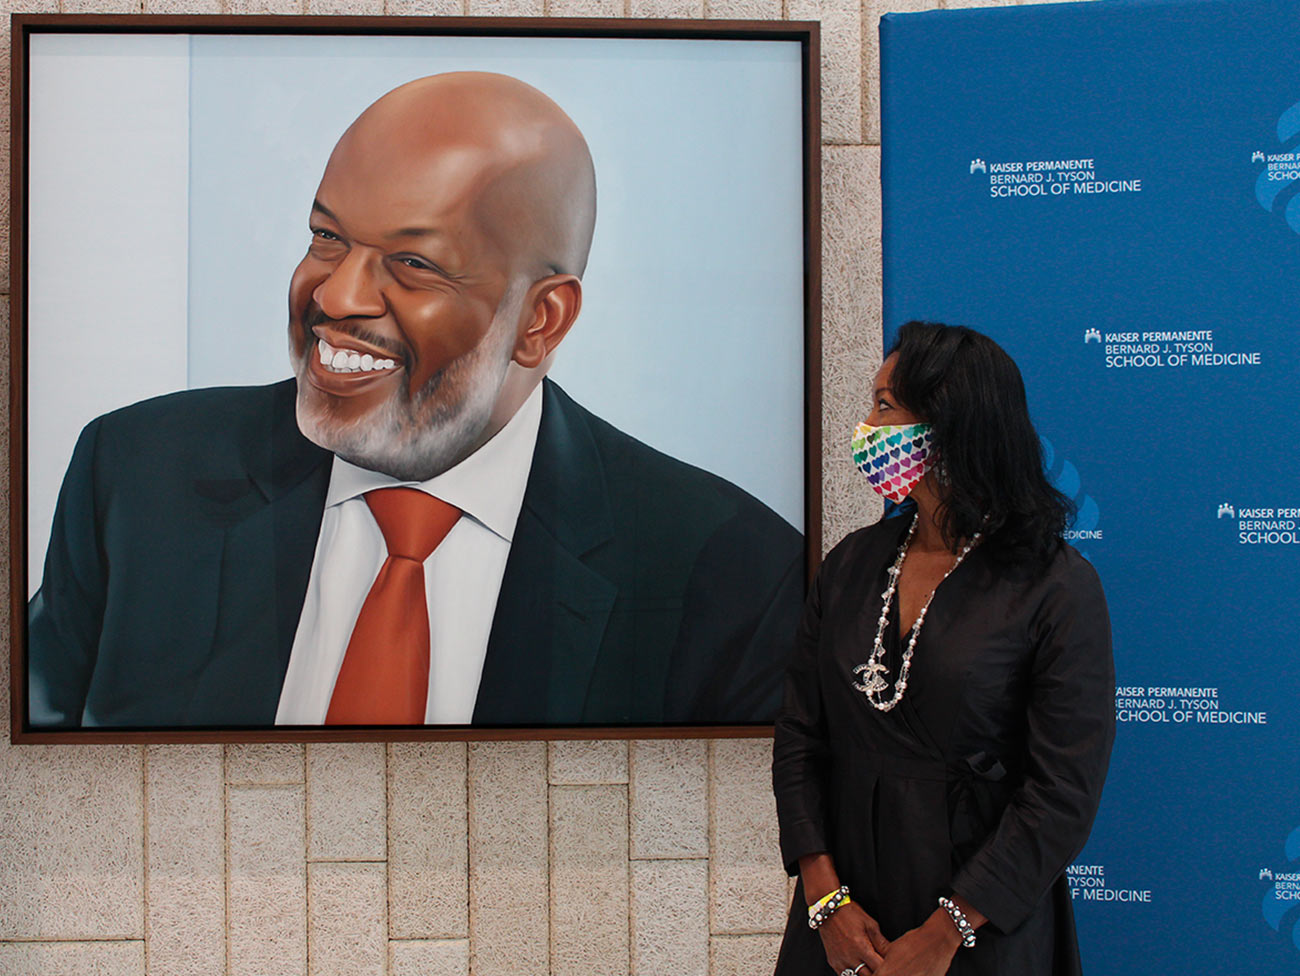 Denise Bradley-Tyson admiring a portrait of Bernard J. Tyson at the Kaiser Permanente Bernard J. Tyson School of Medicine